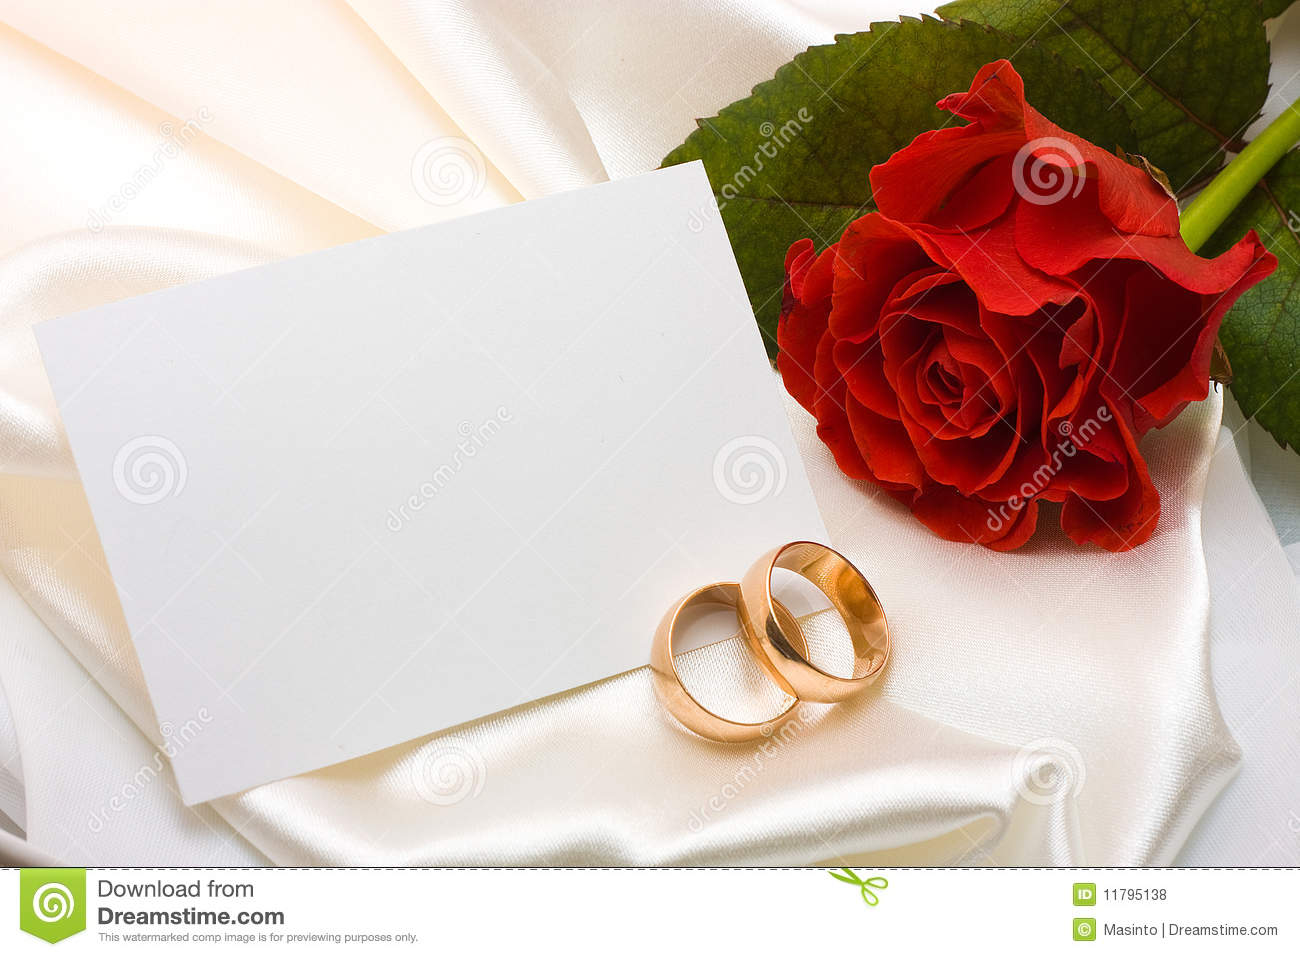 Wedding rings, rose and card